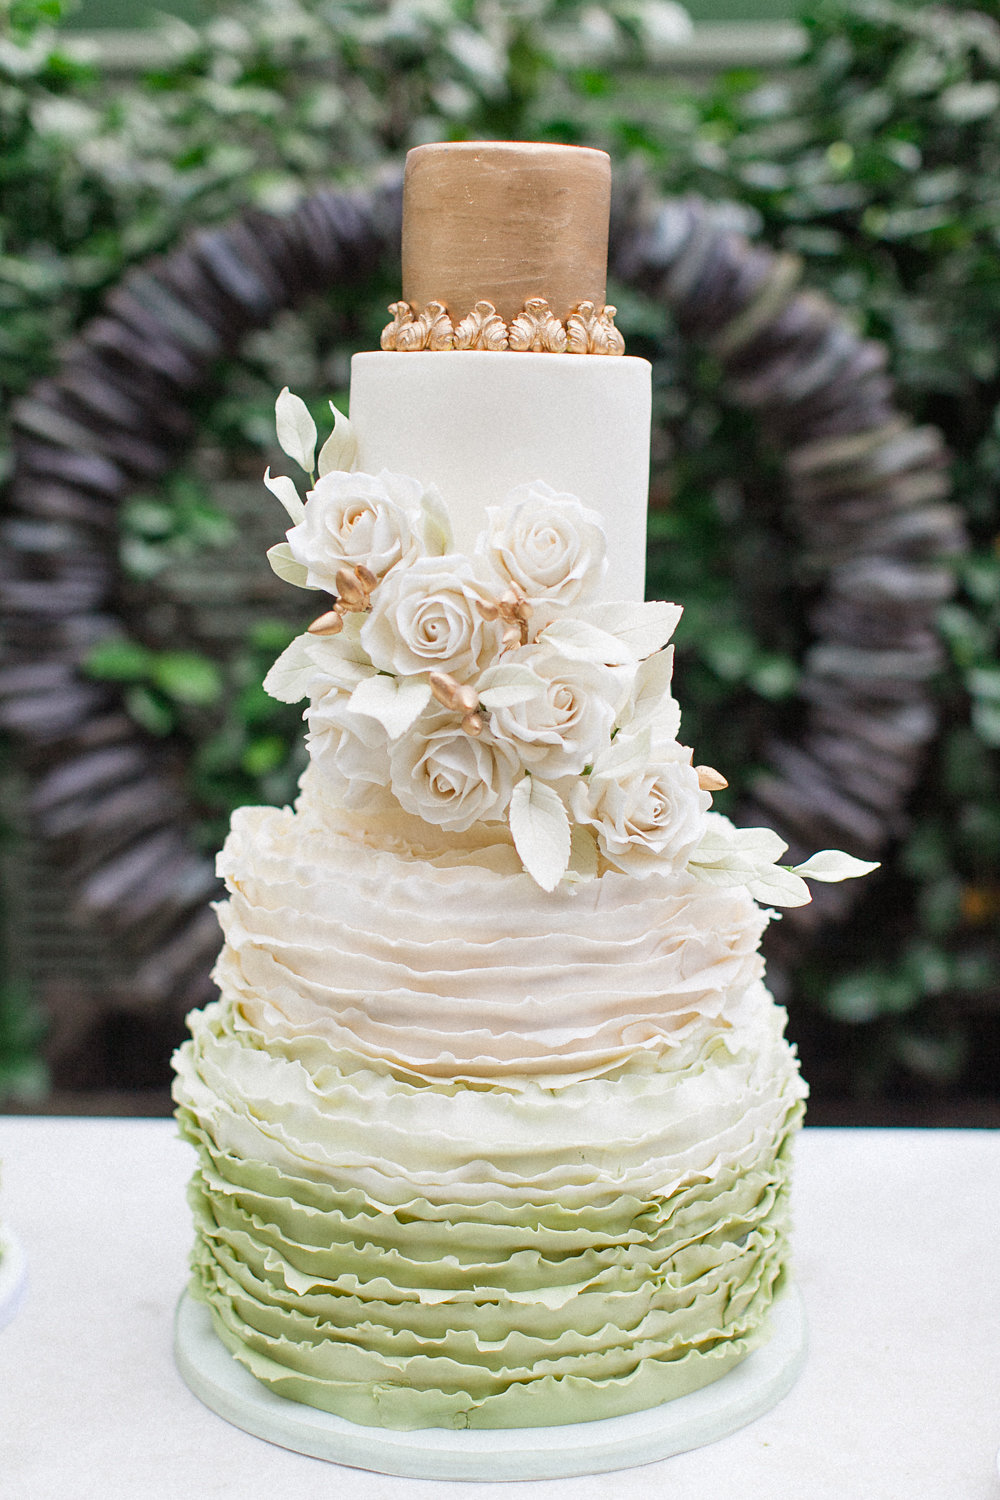 gold and green wedding cake with sugar flowers - photo by Roberta Facchini Photography http://ruffledblog.com/herbarium-inspired-wedding-ideas